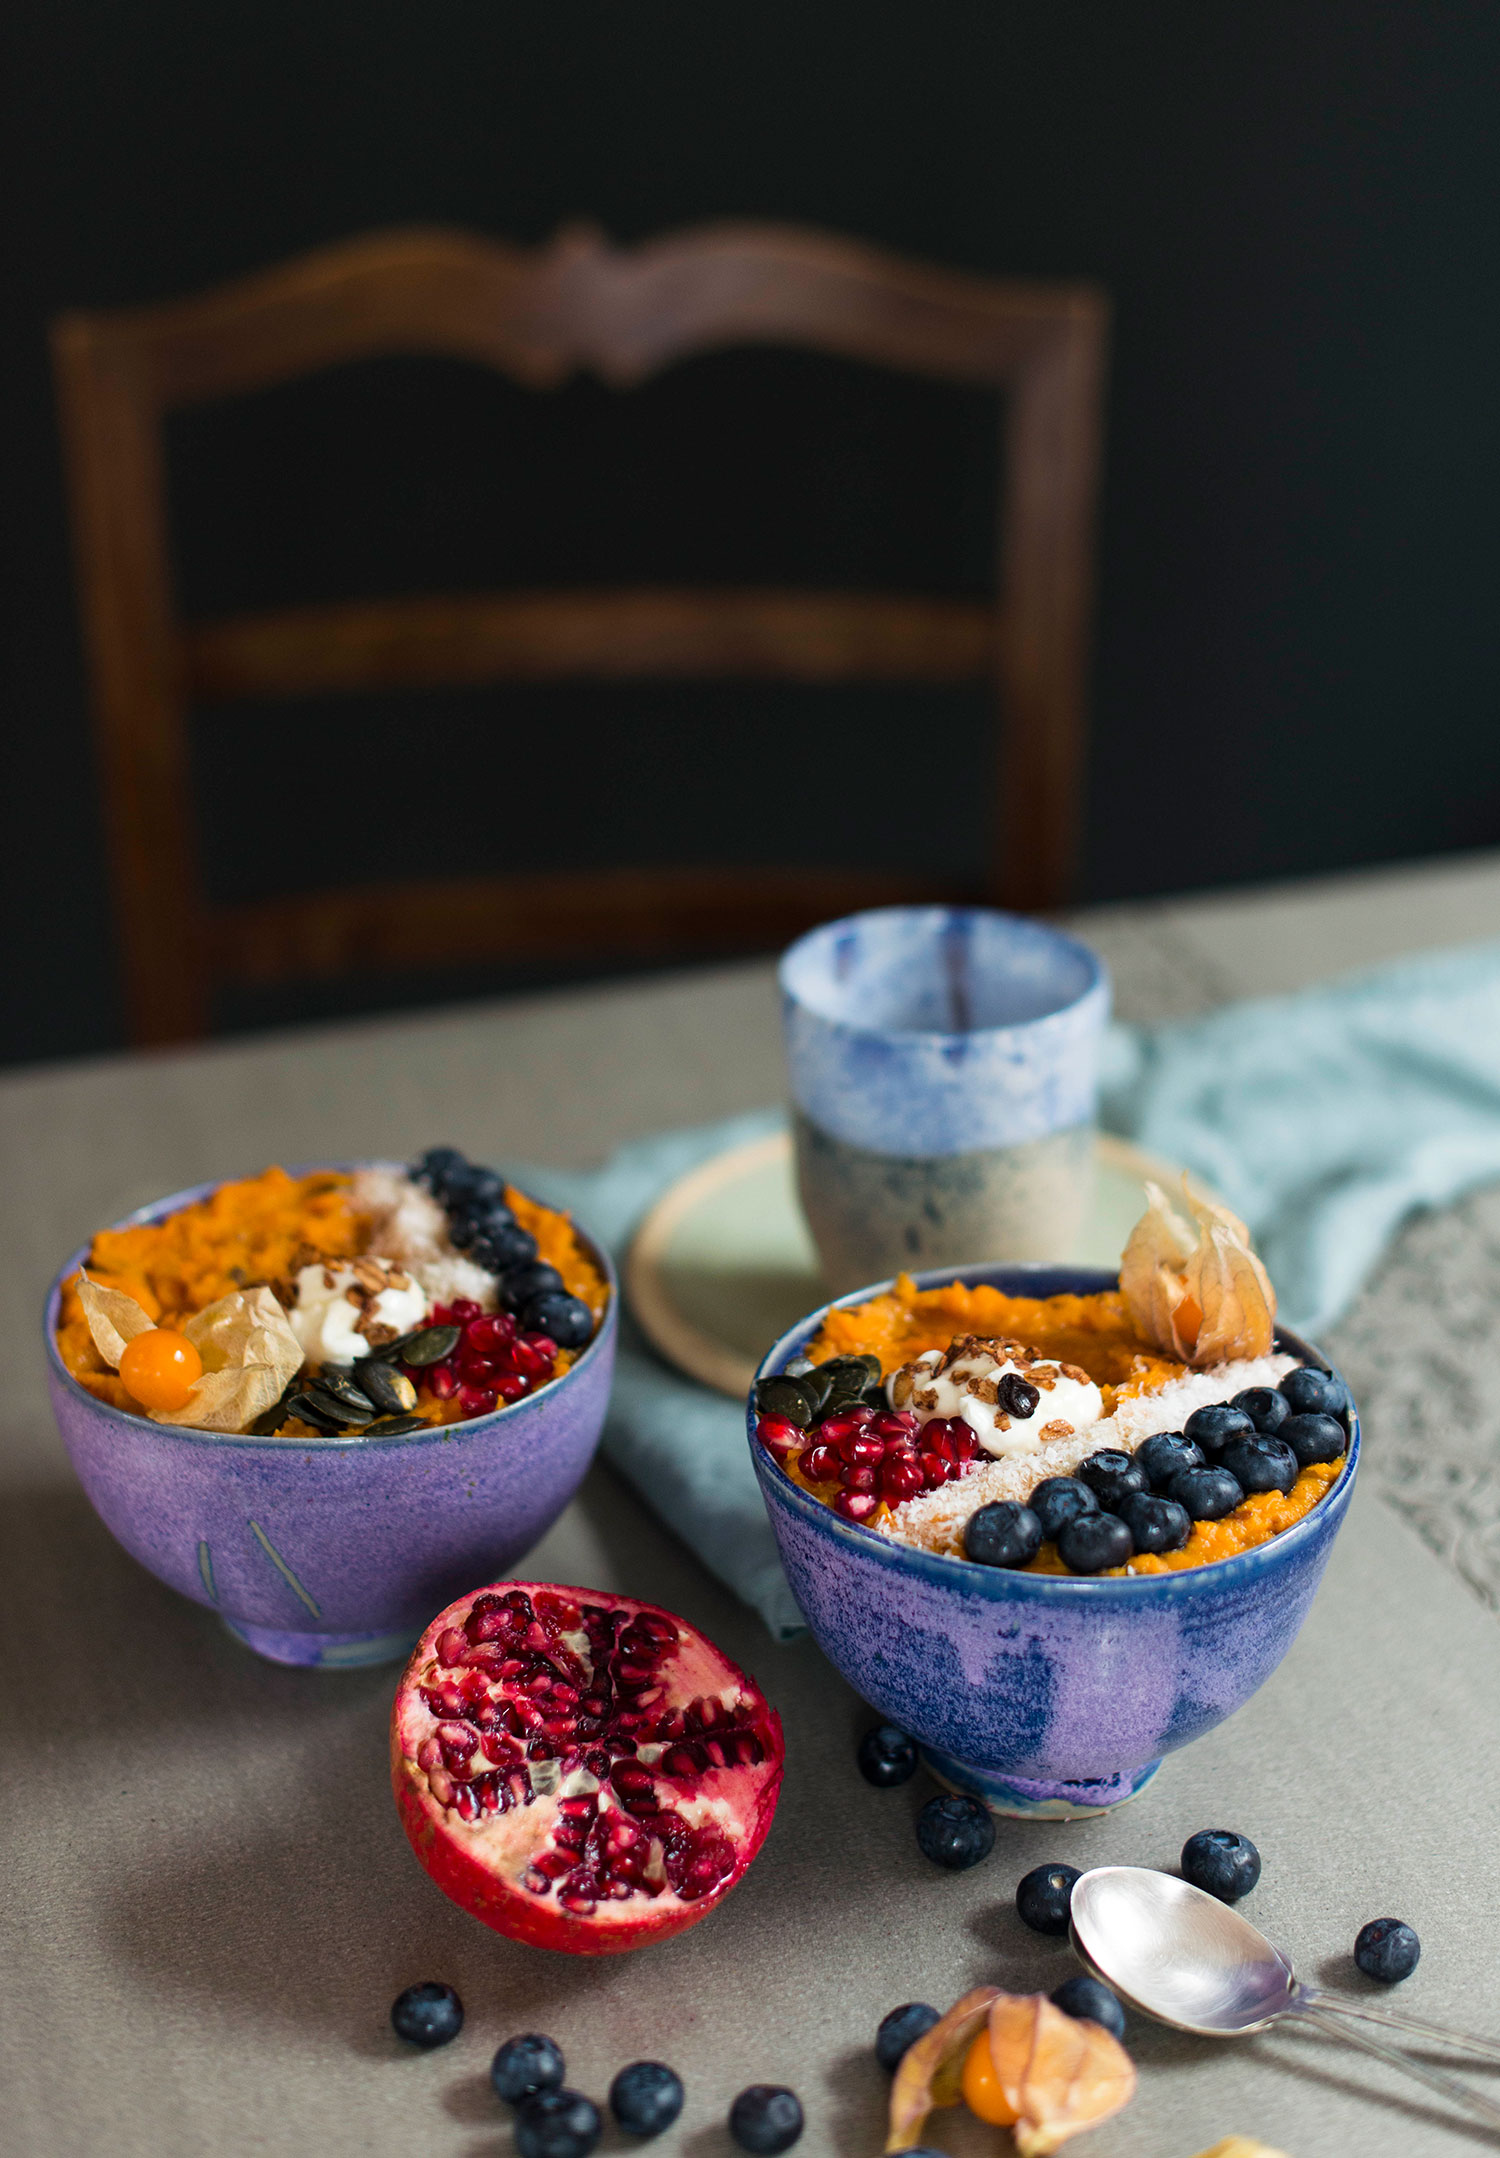 Vegan-paleo-sweet-potato-bowl-4